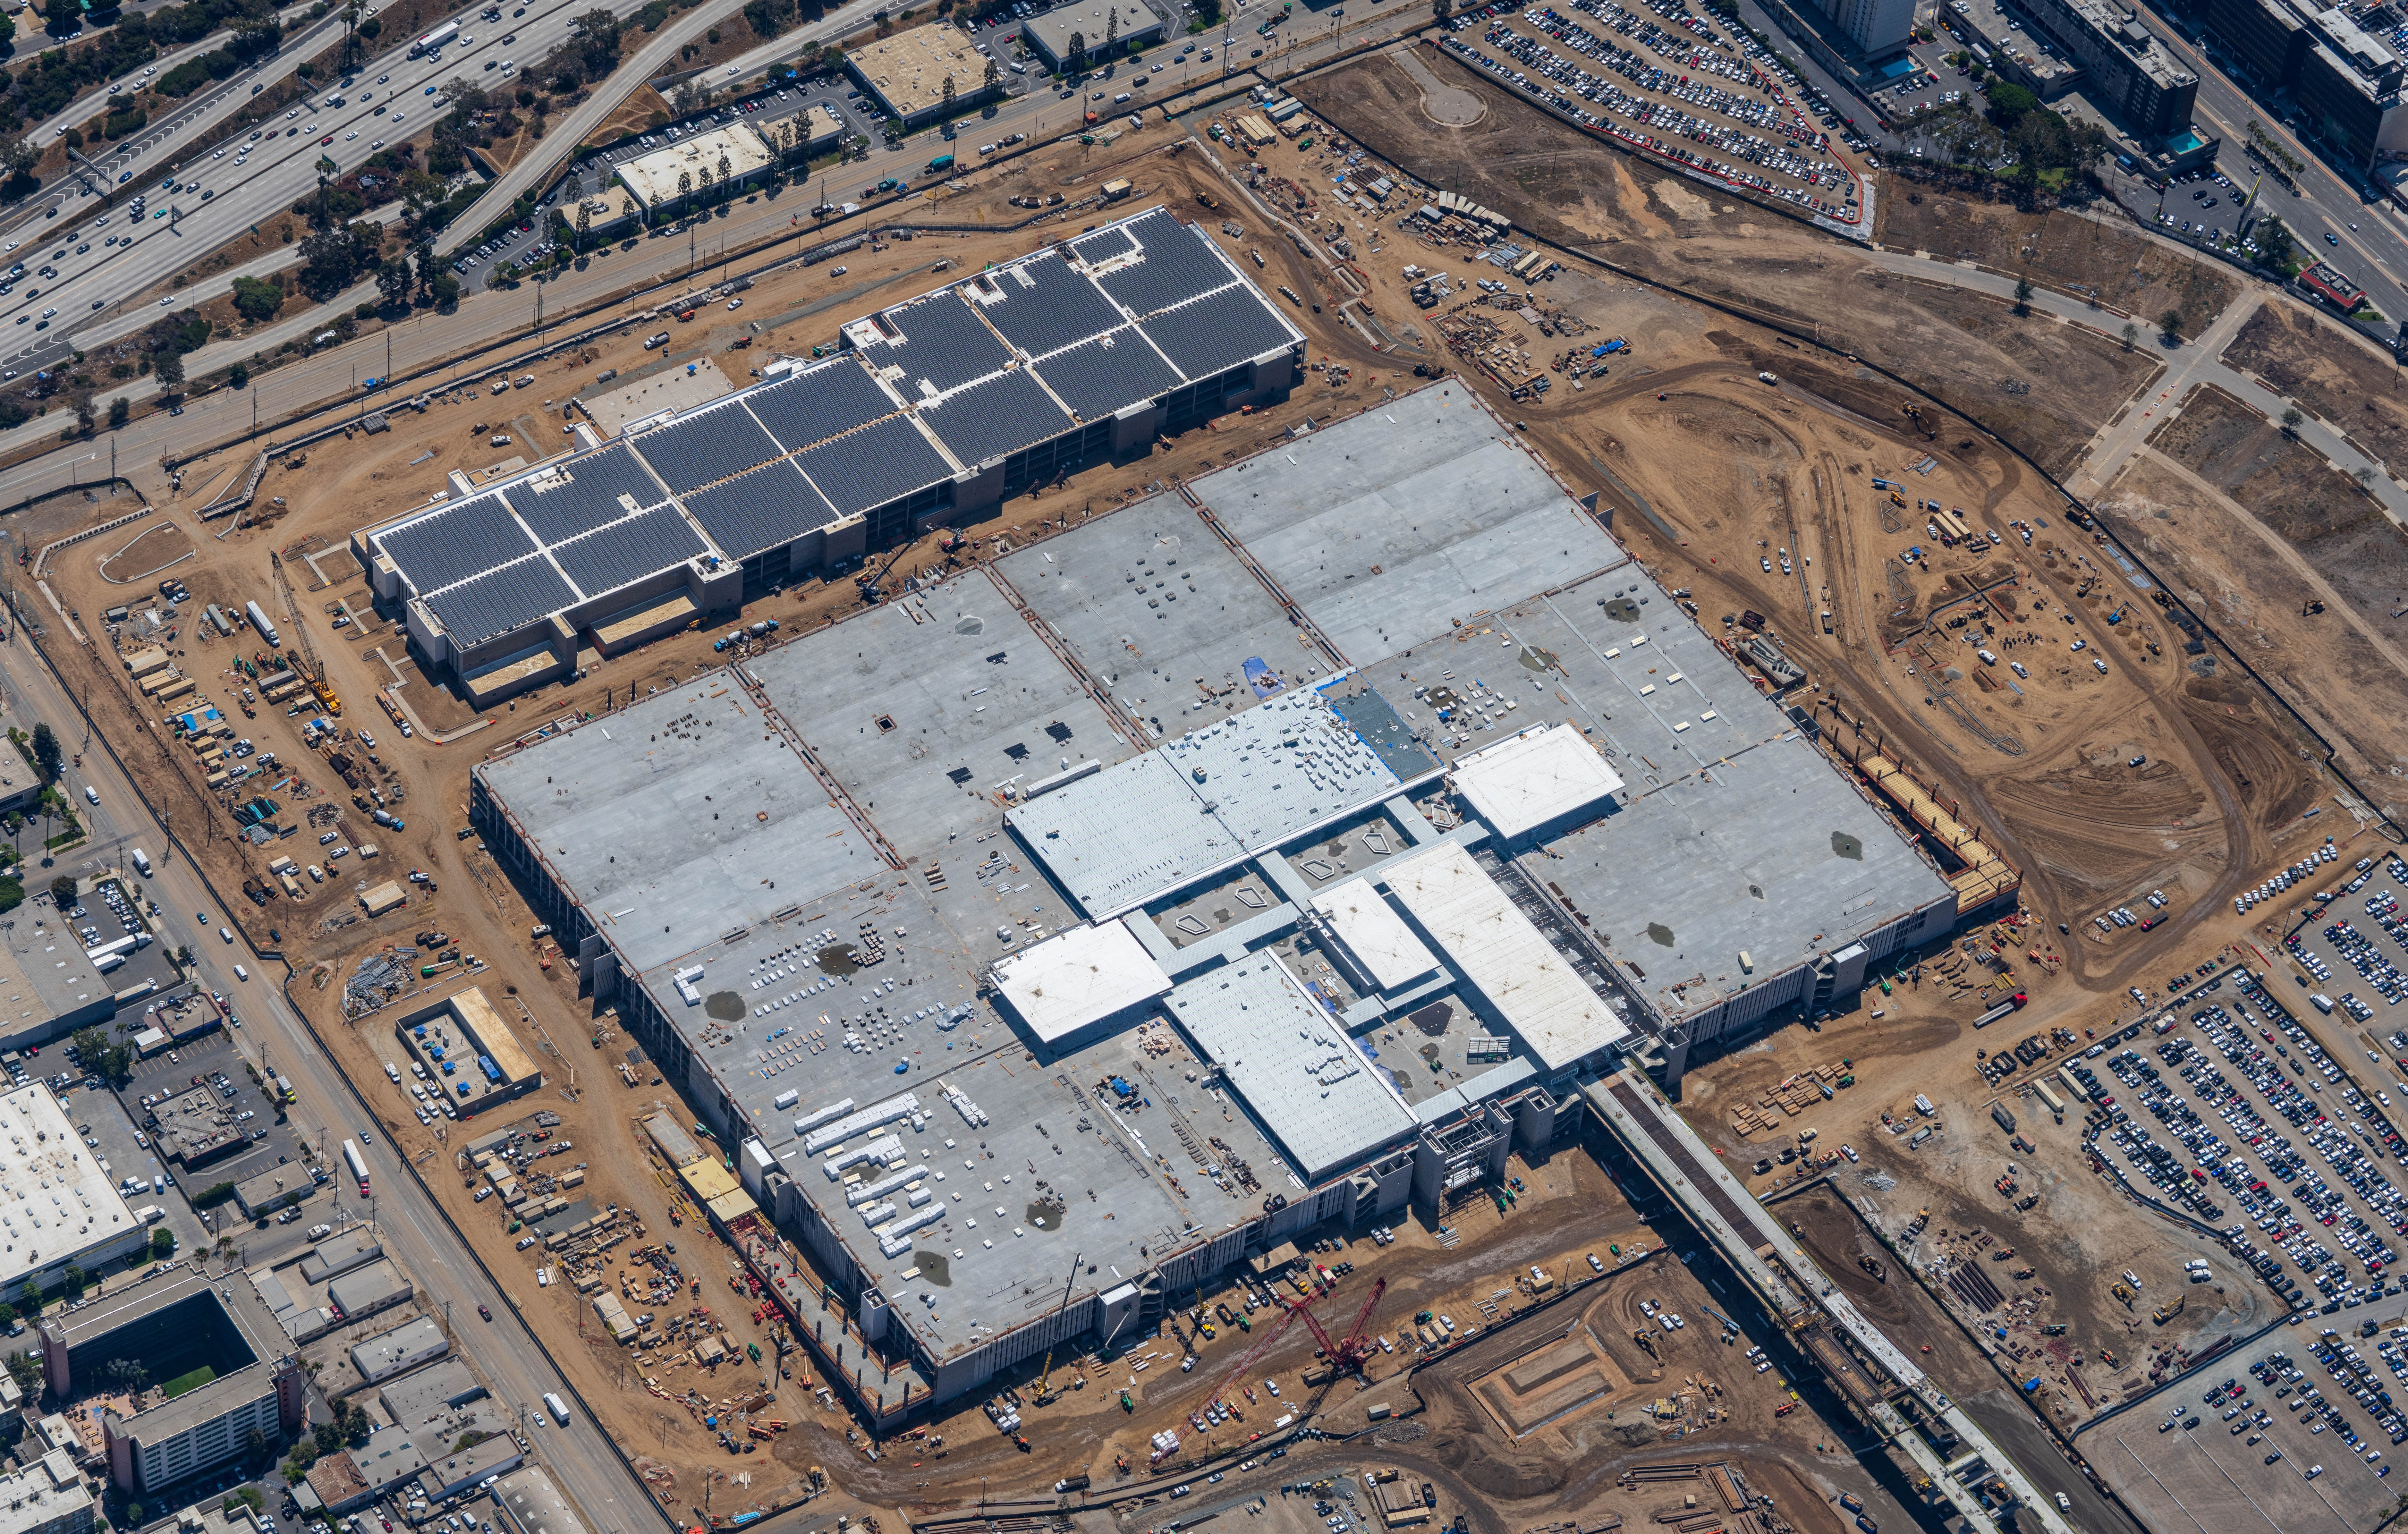 An aerial view of the Consolidated Rent-A-Car facility.